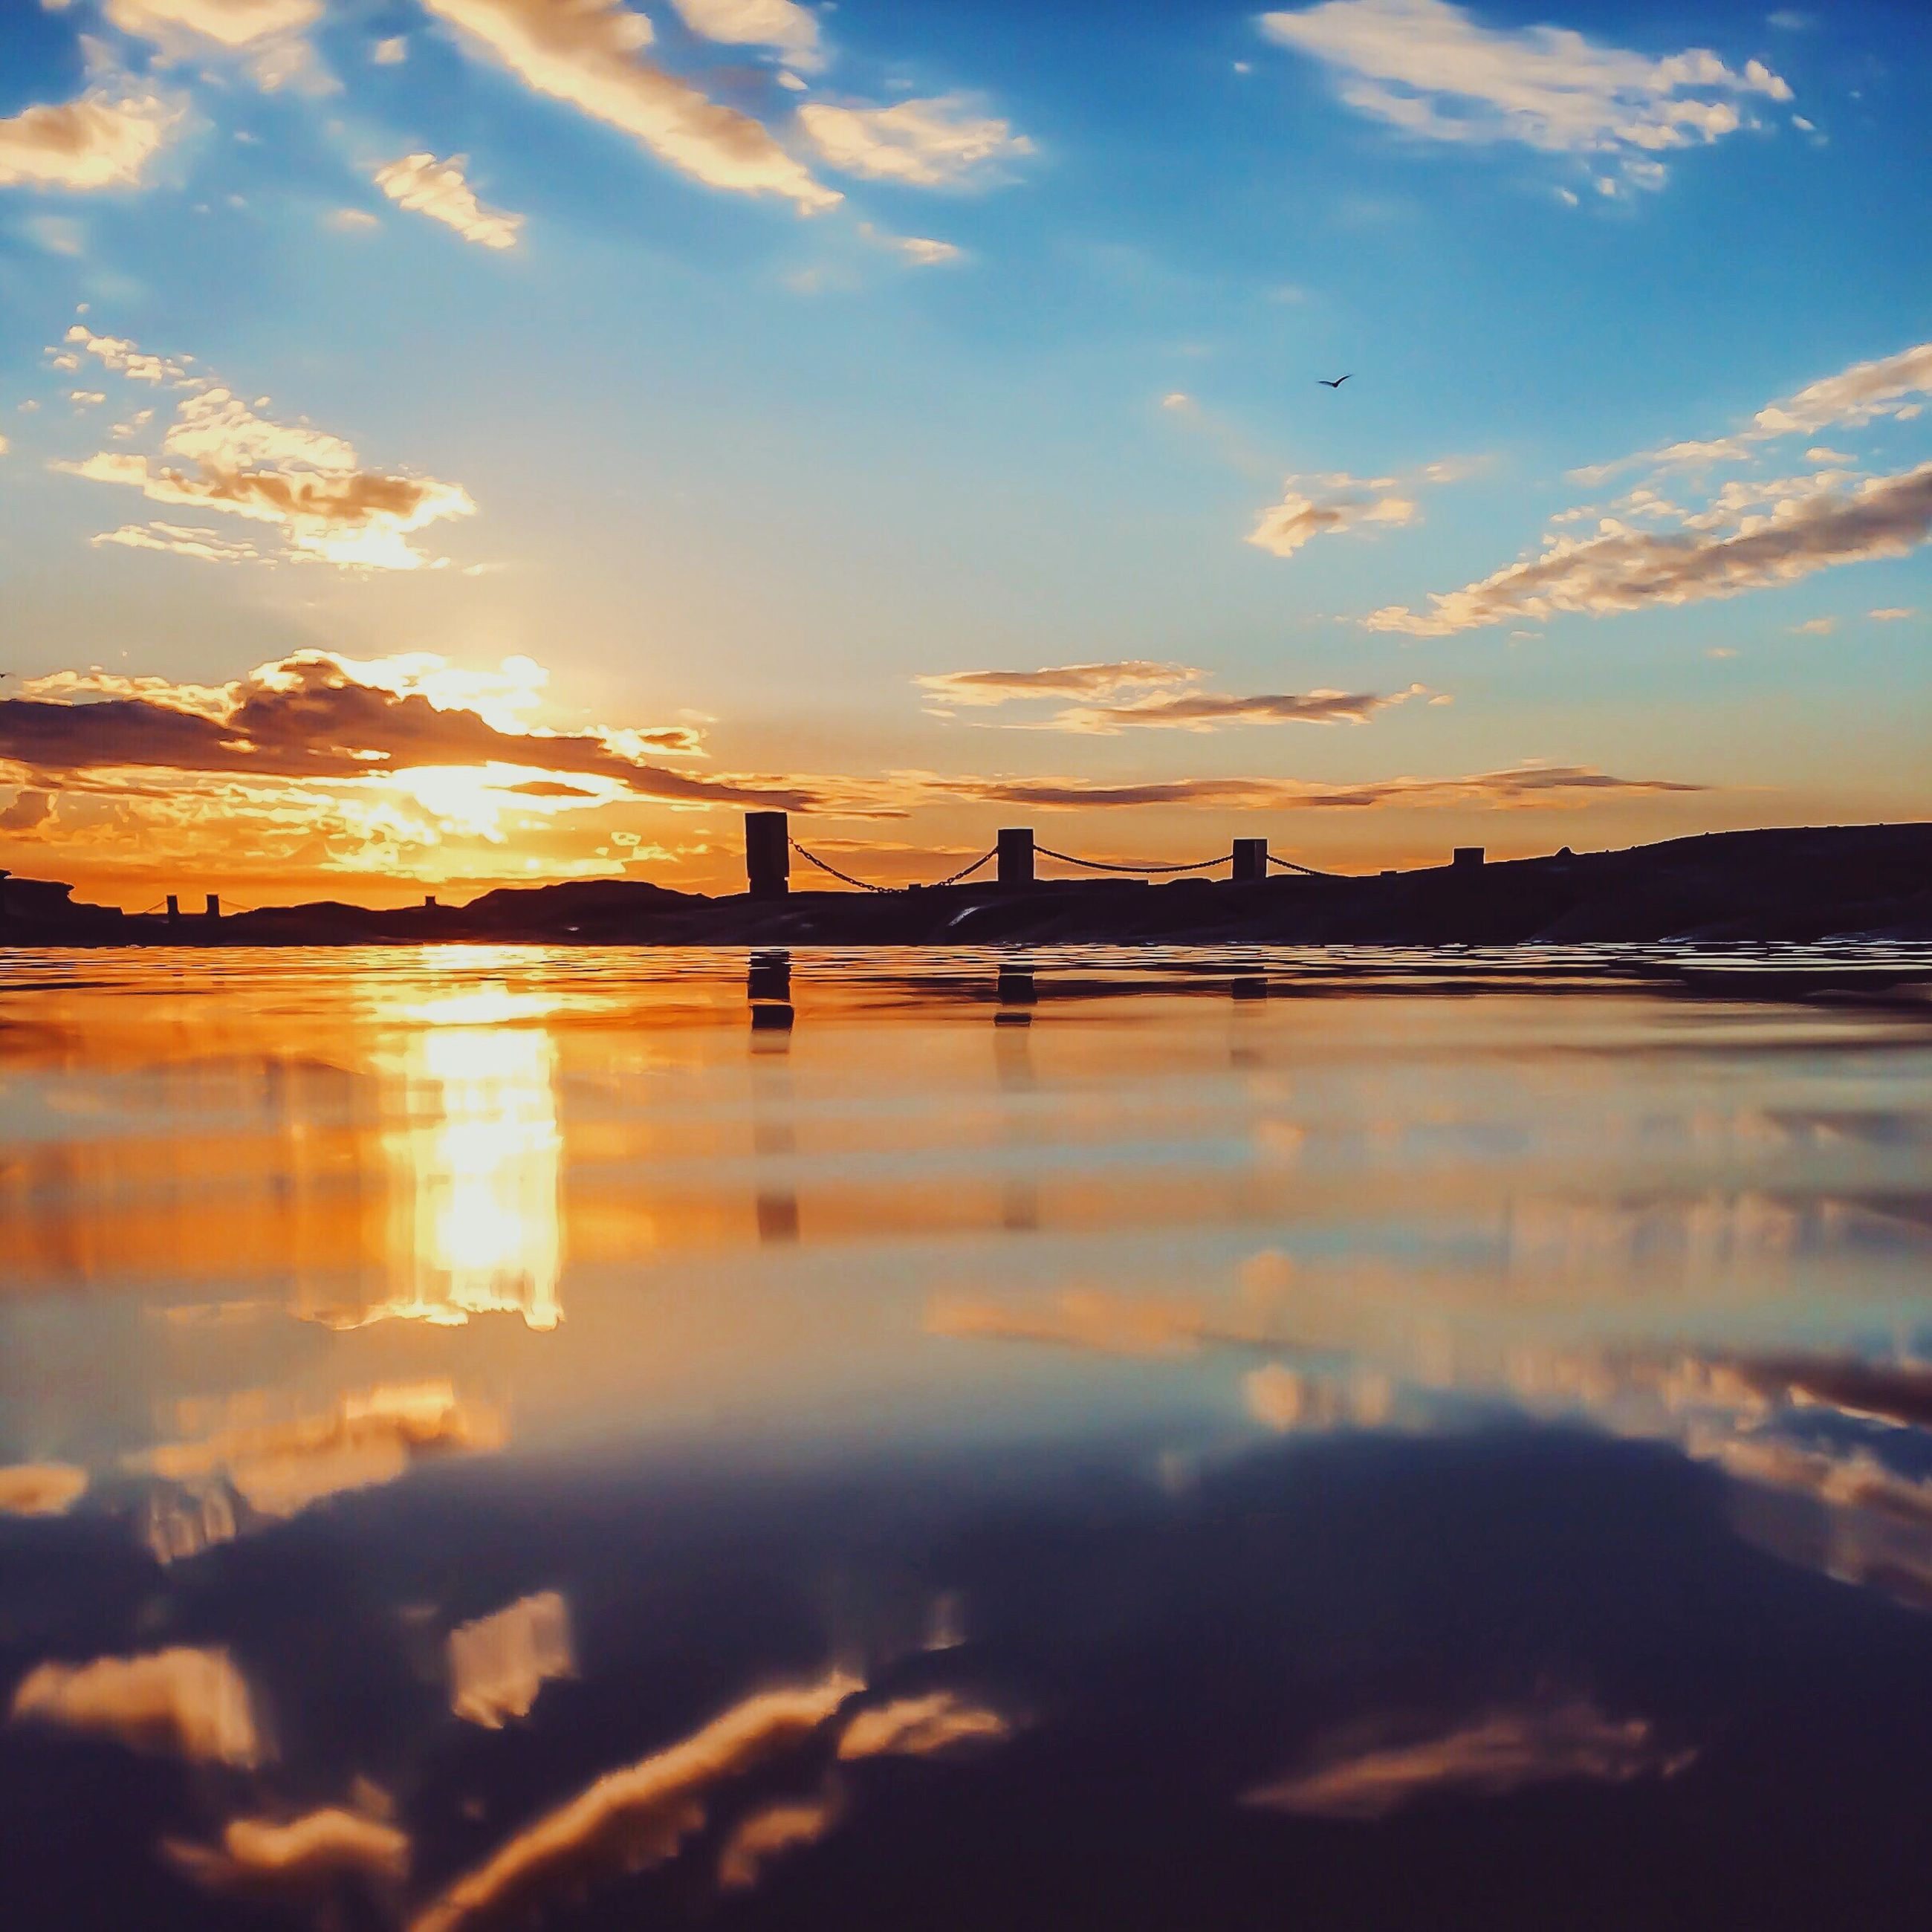 sunset, water, reflection, tranquil scene, scenics, tranquility, sun, idyllic, lake, sky, waterfront, cloud - sky, river, bridge - man made structure, calm, beauty in nature, cloud, nature, orange color, standing water, outdoors, sea, surface level, majestic, ocean, bridge, no people, remote